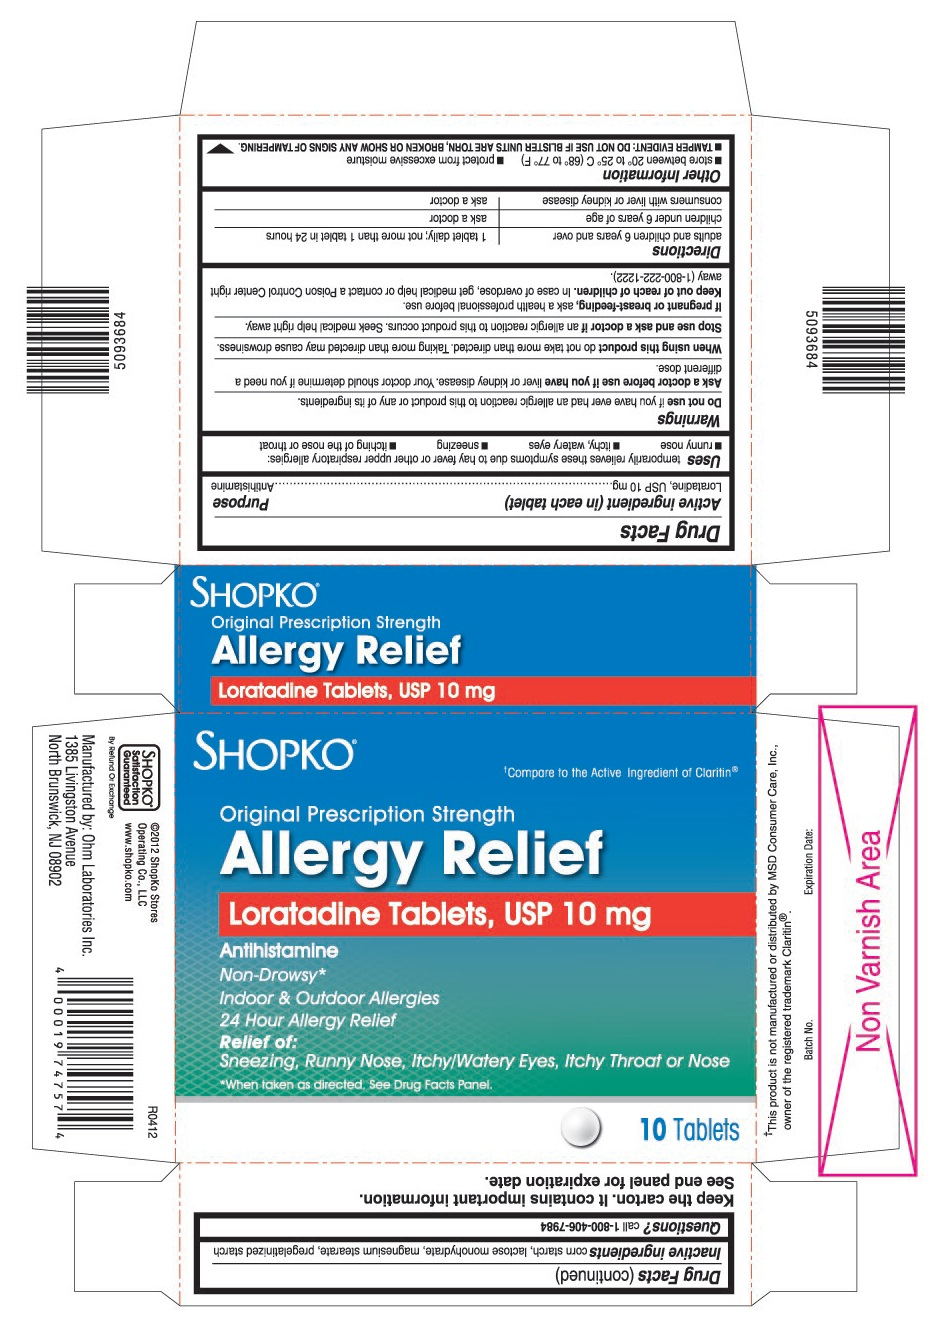 This is the 10 count blister carton label for Shopko Loratadine tablets, USP 10 mg